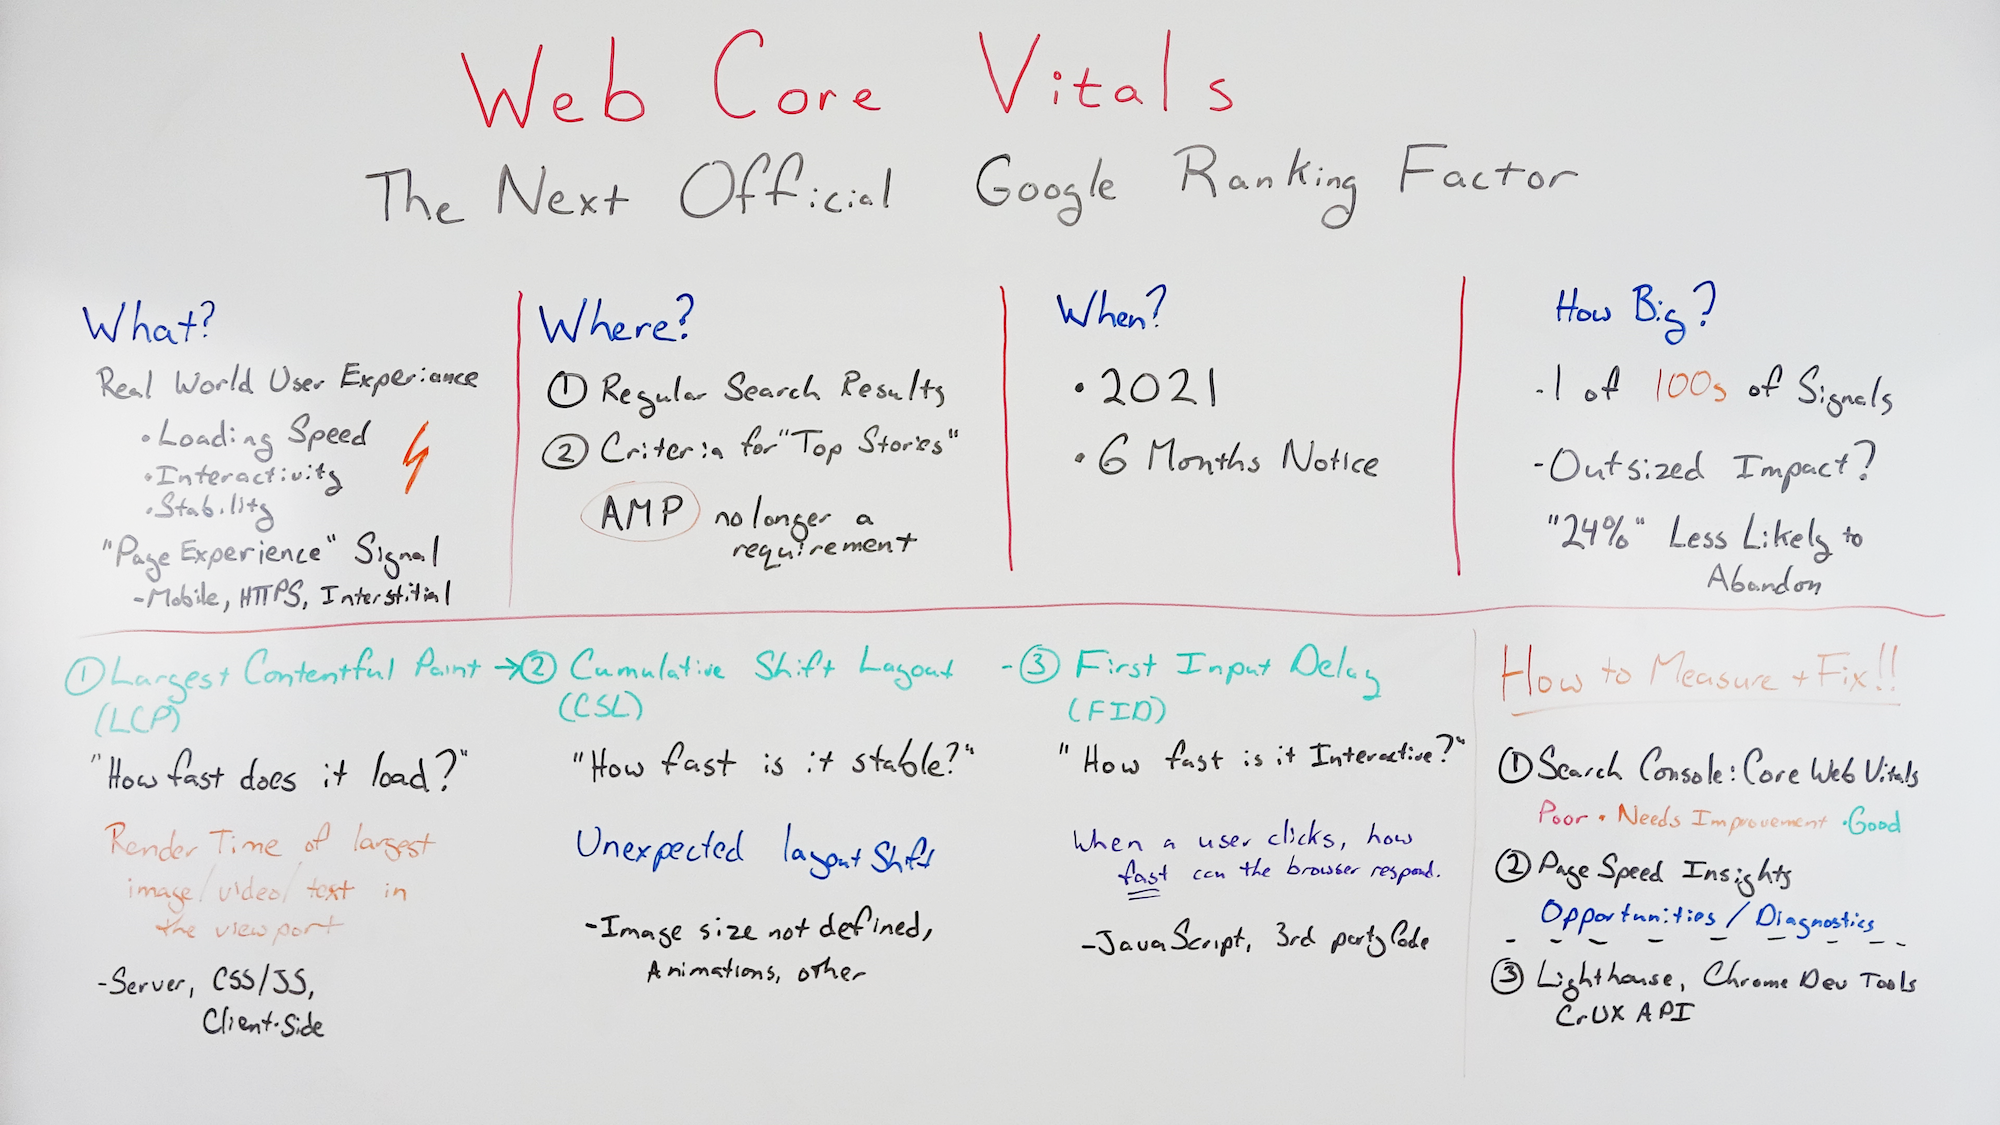 Principais vitais da Web: o próximo fator oficial de classificação do Google - Whiteboard Friday 2